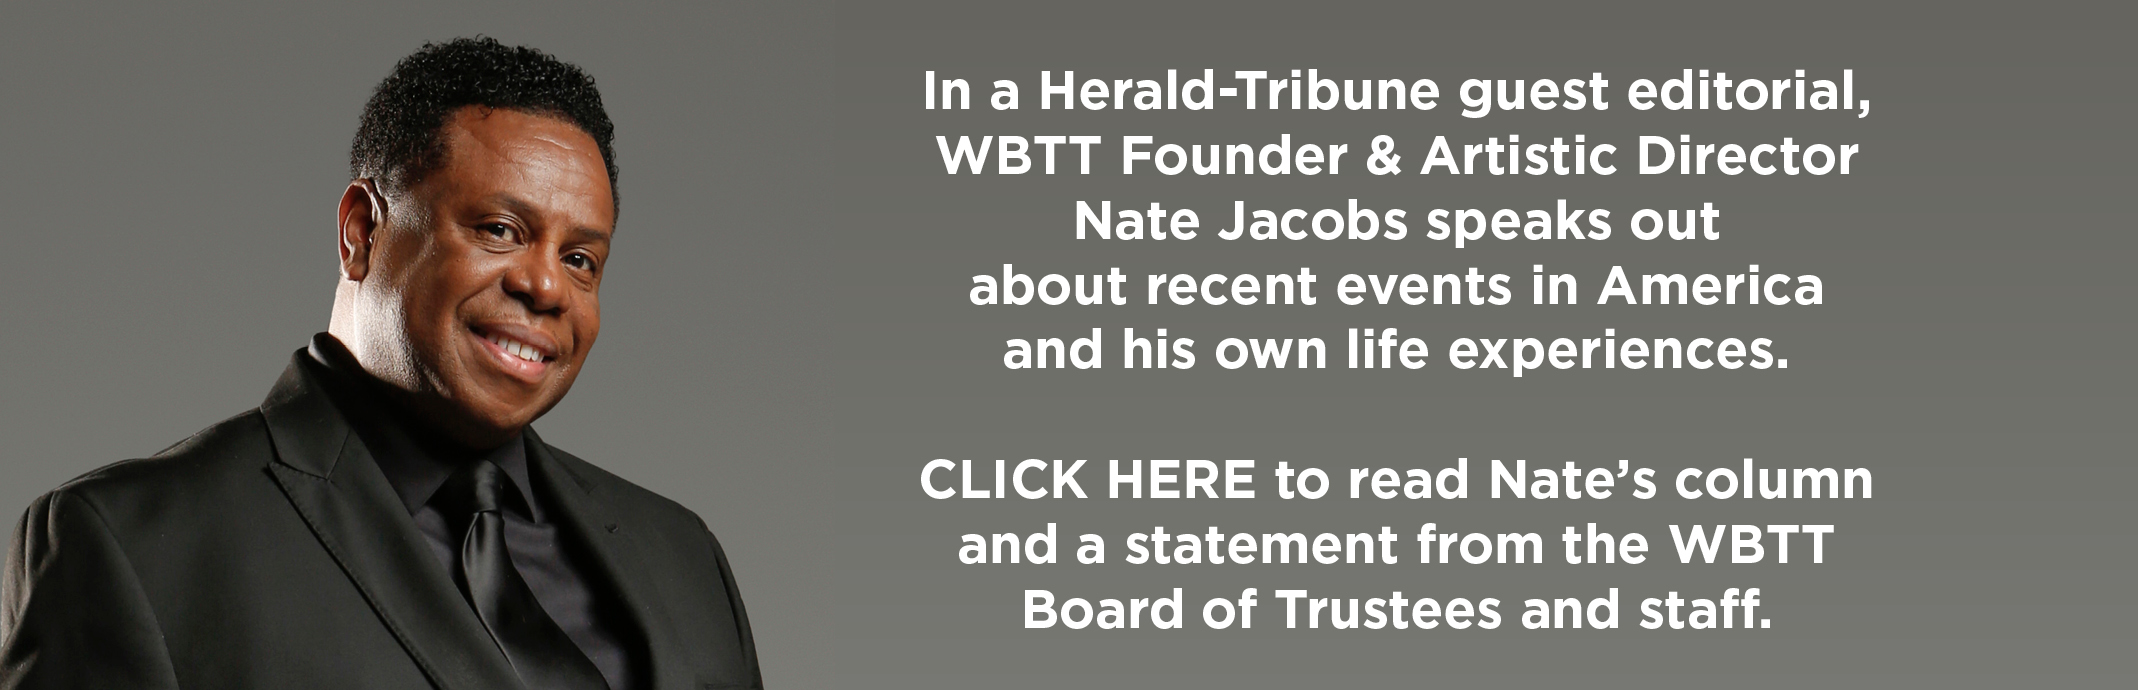 WBTT STATEMENTS ON RECENT EVENTS IN AMERICA